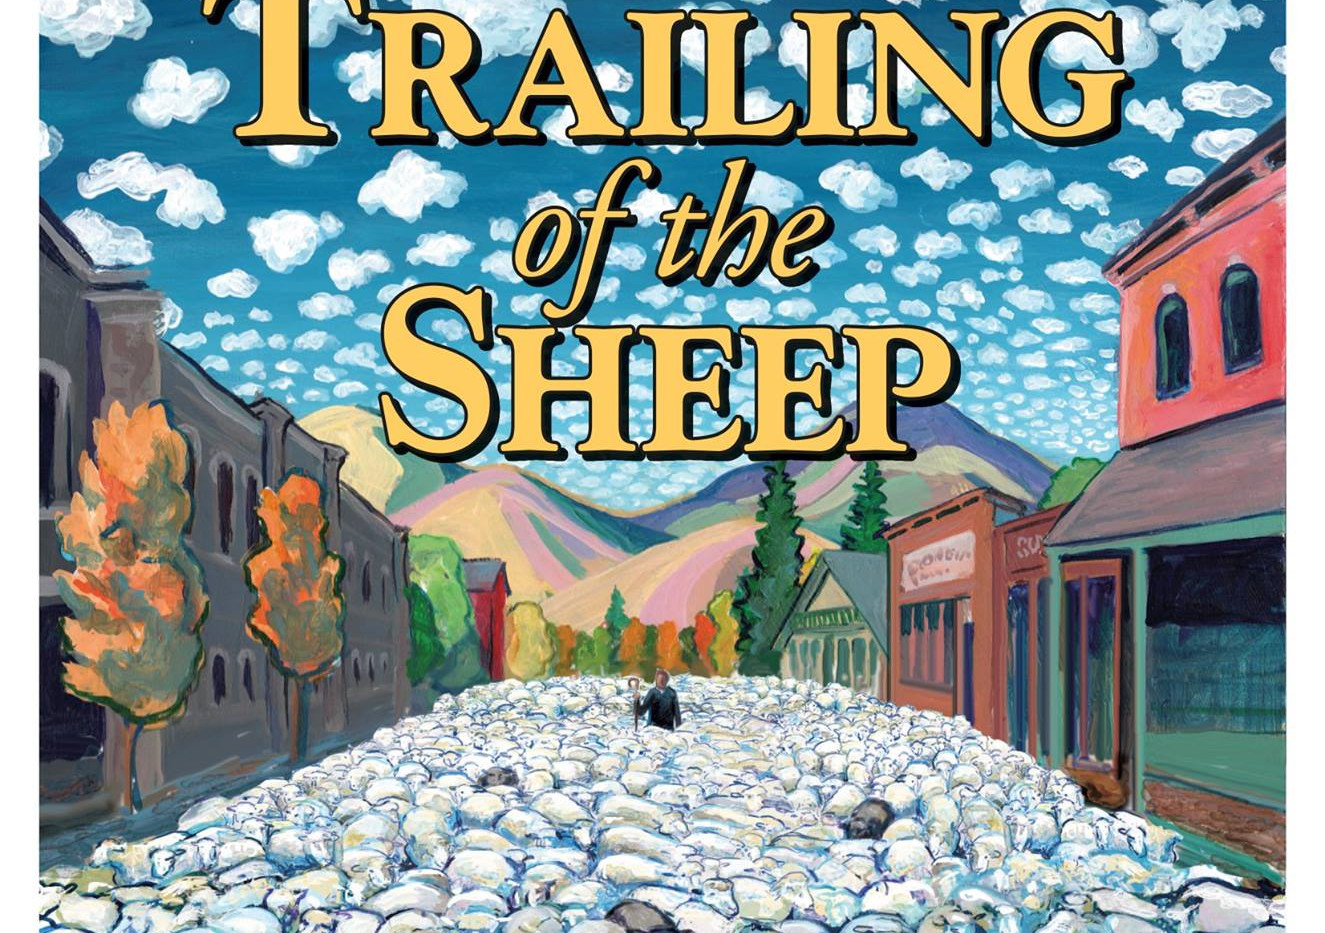 Trailing of the Sheep 2015